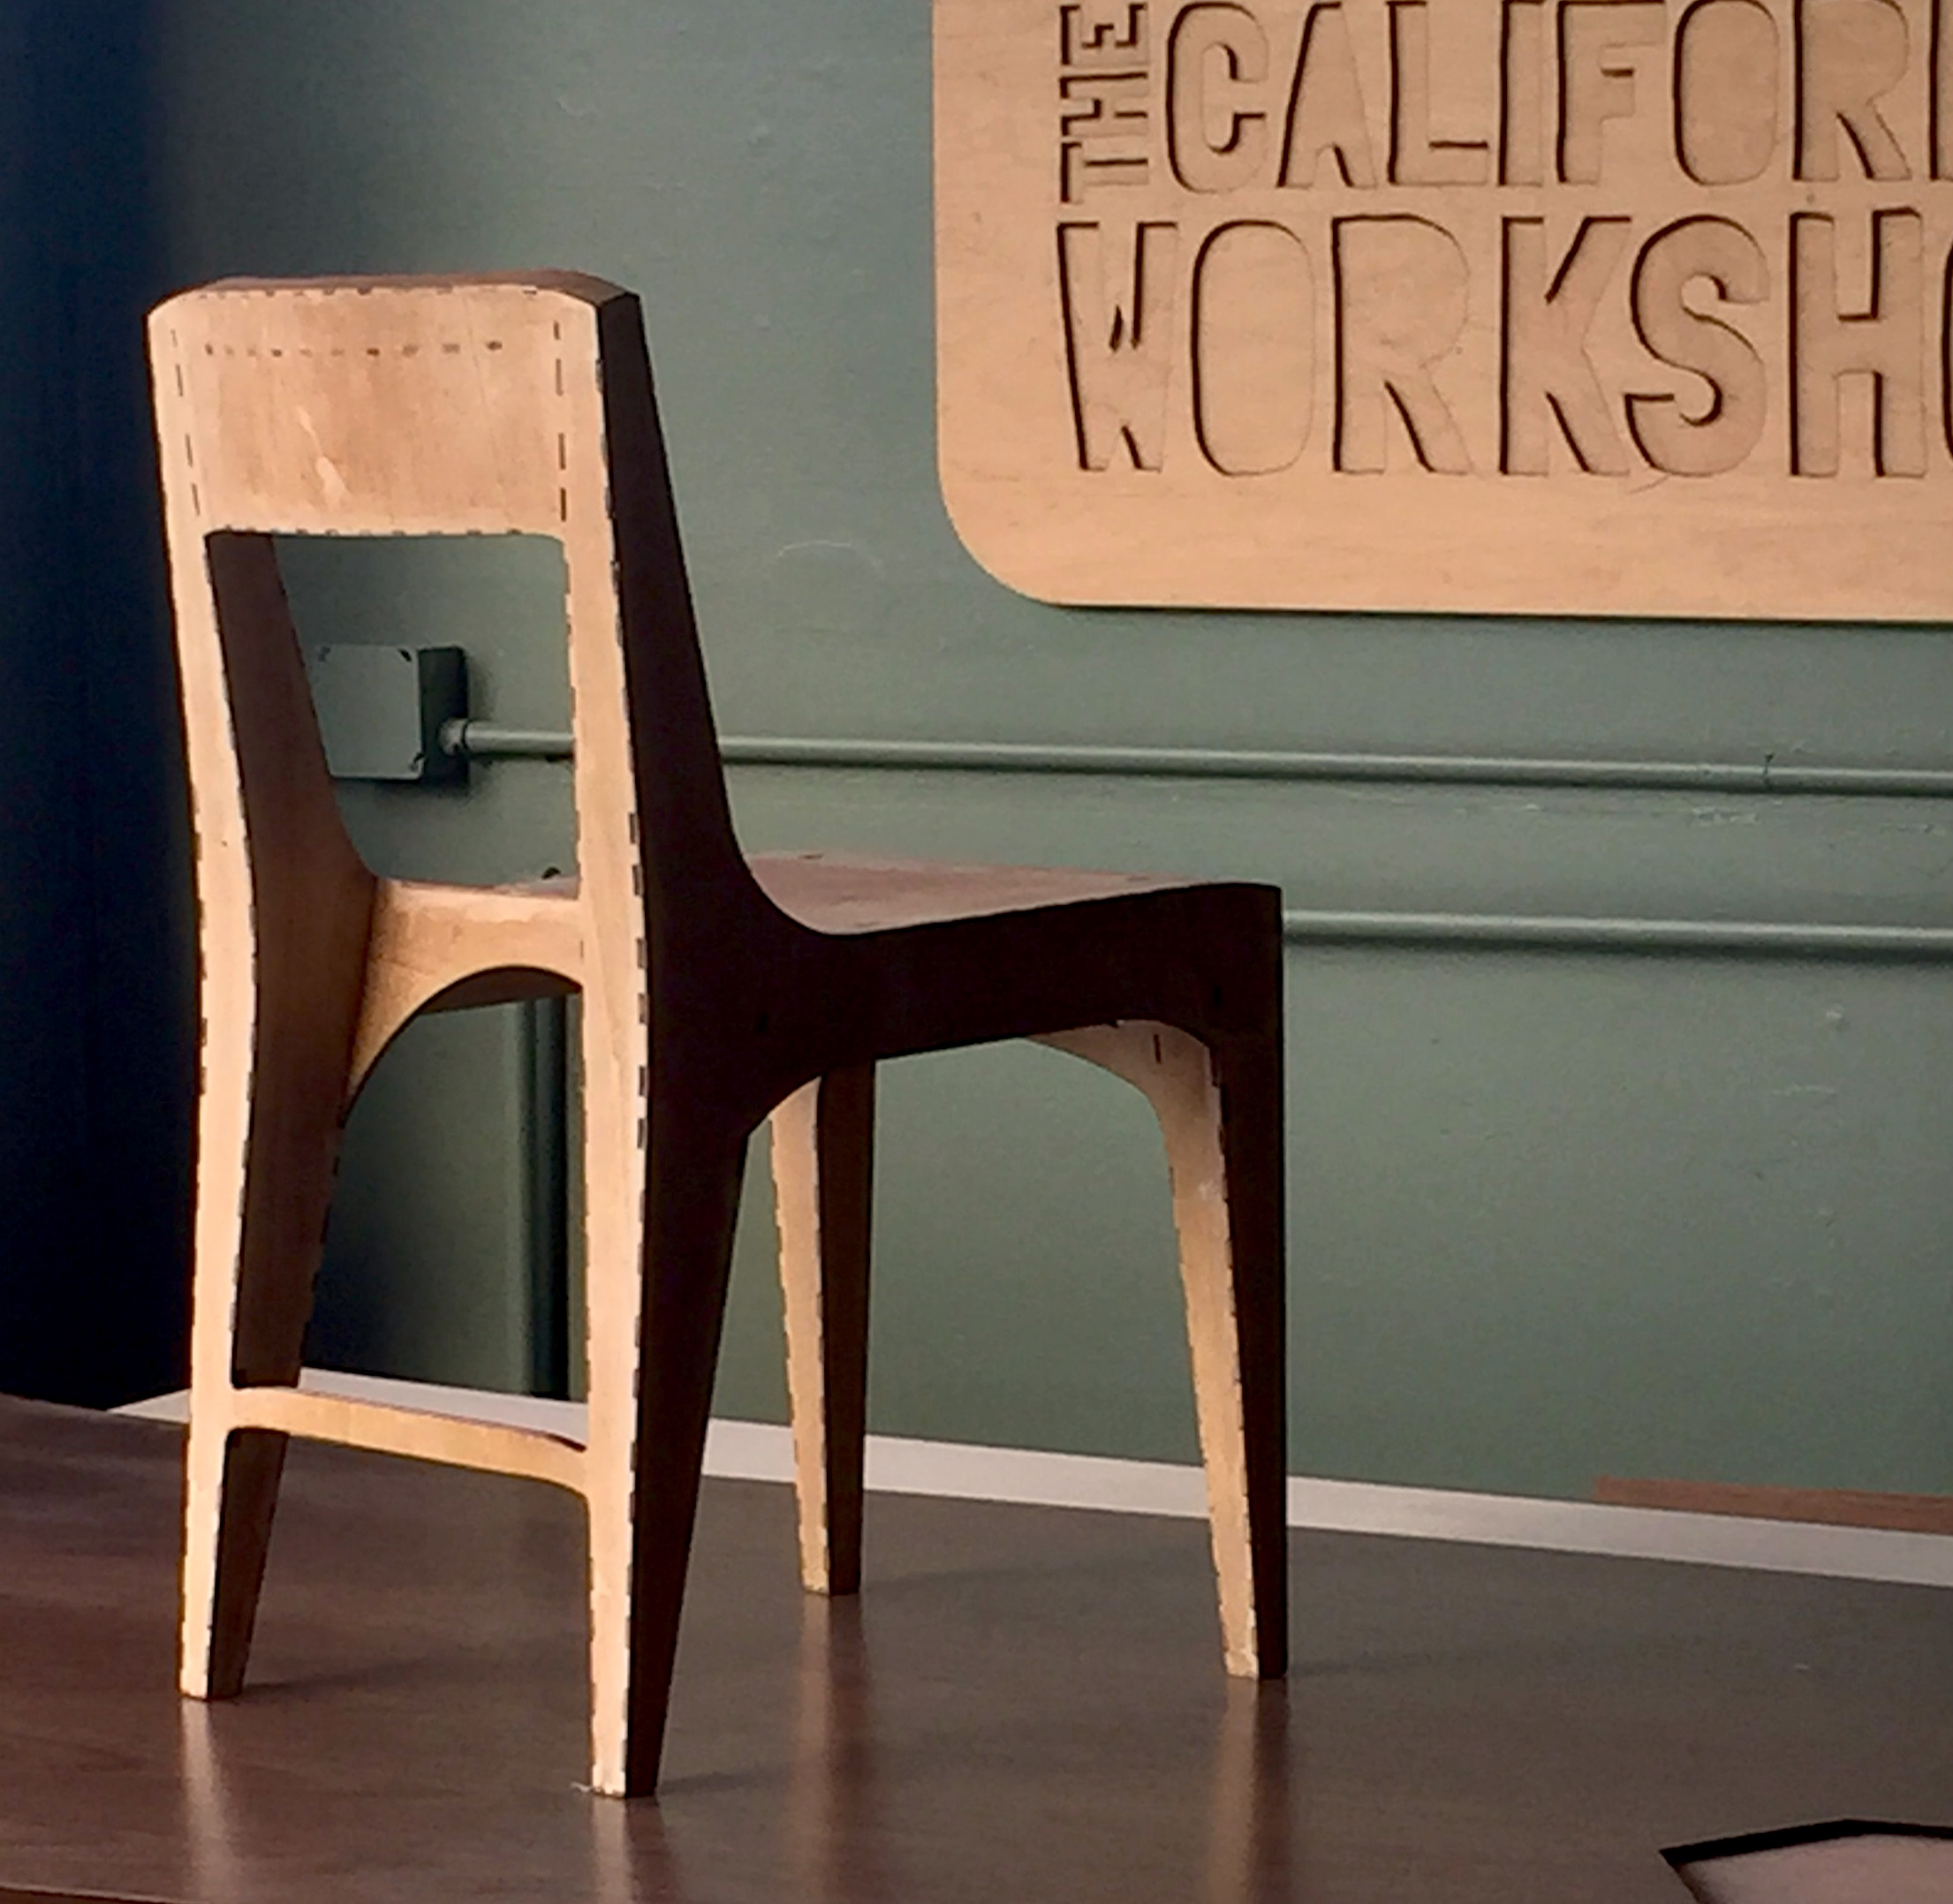 The 9611-010C Chair is completeley hollow. 1.27Kg